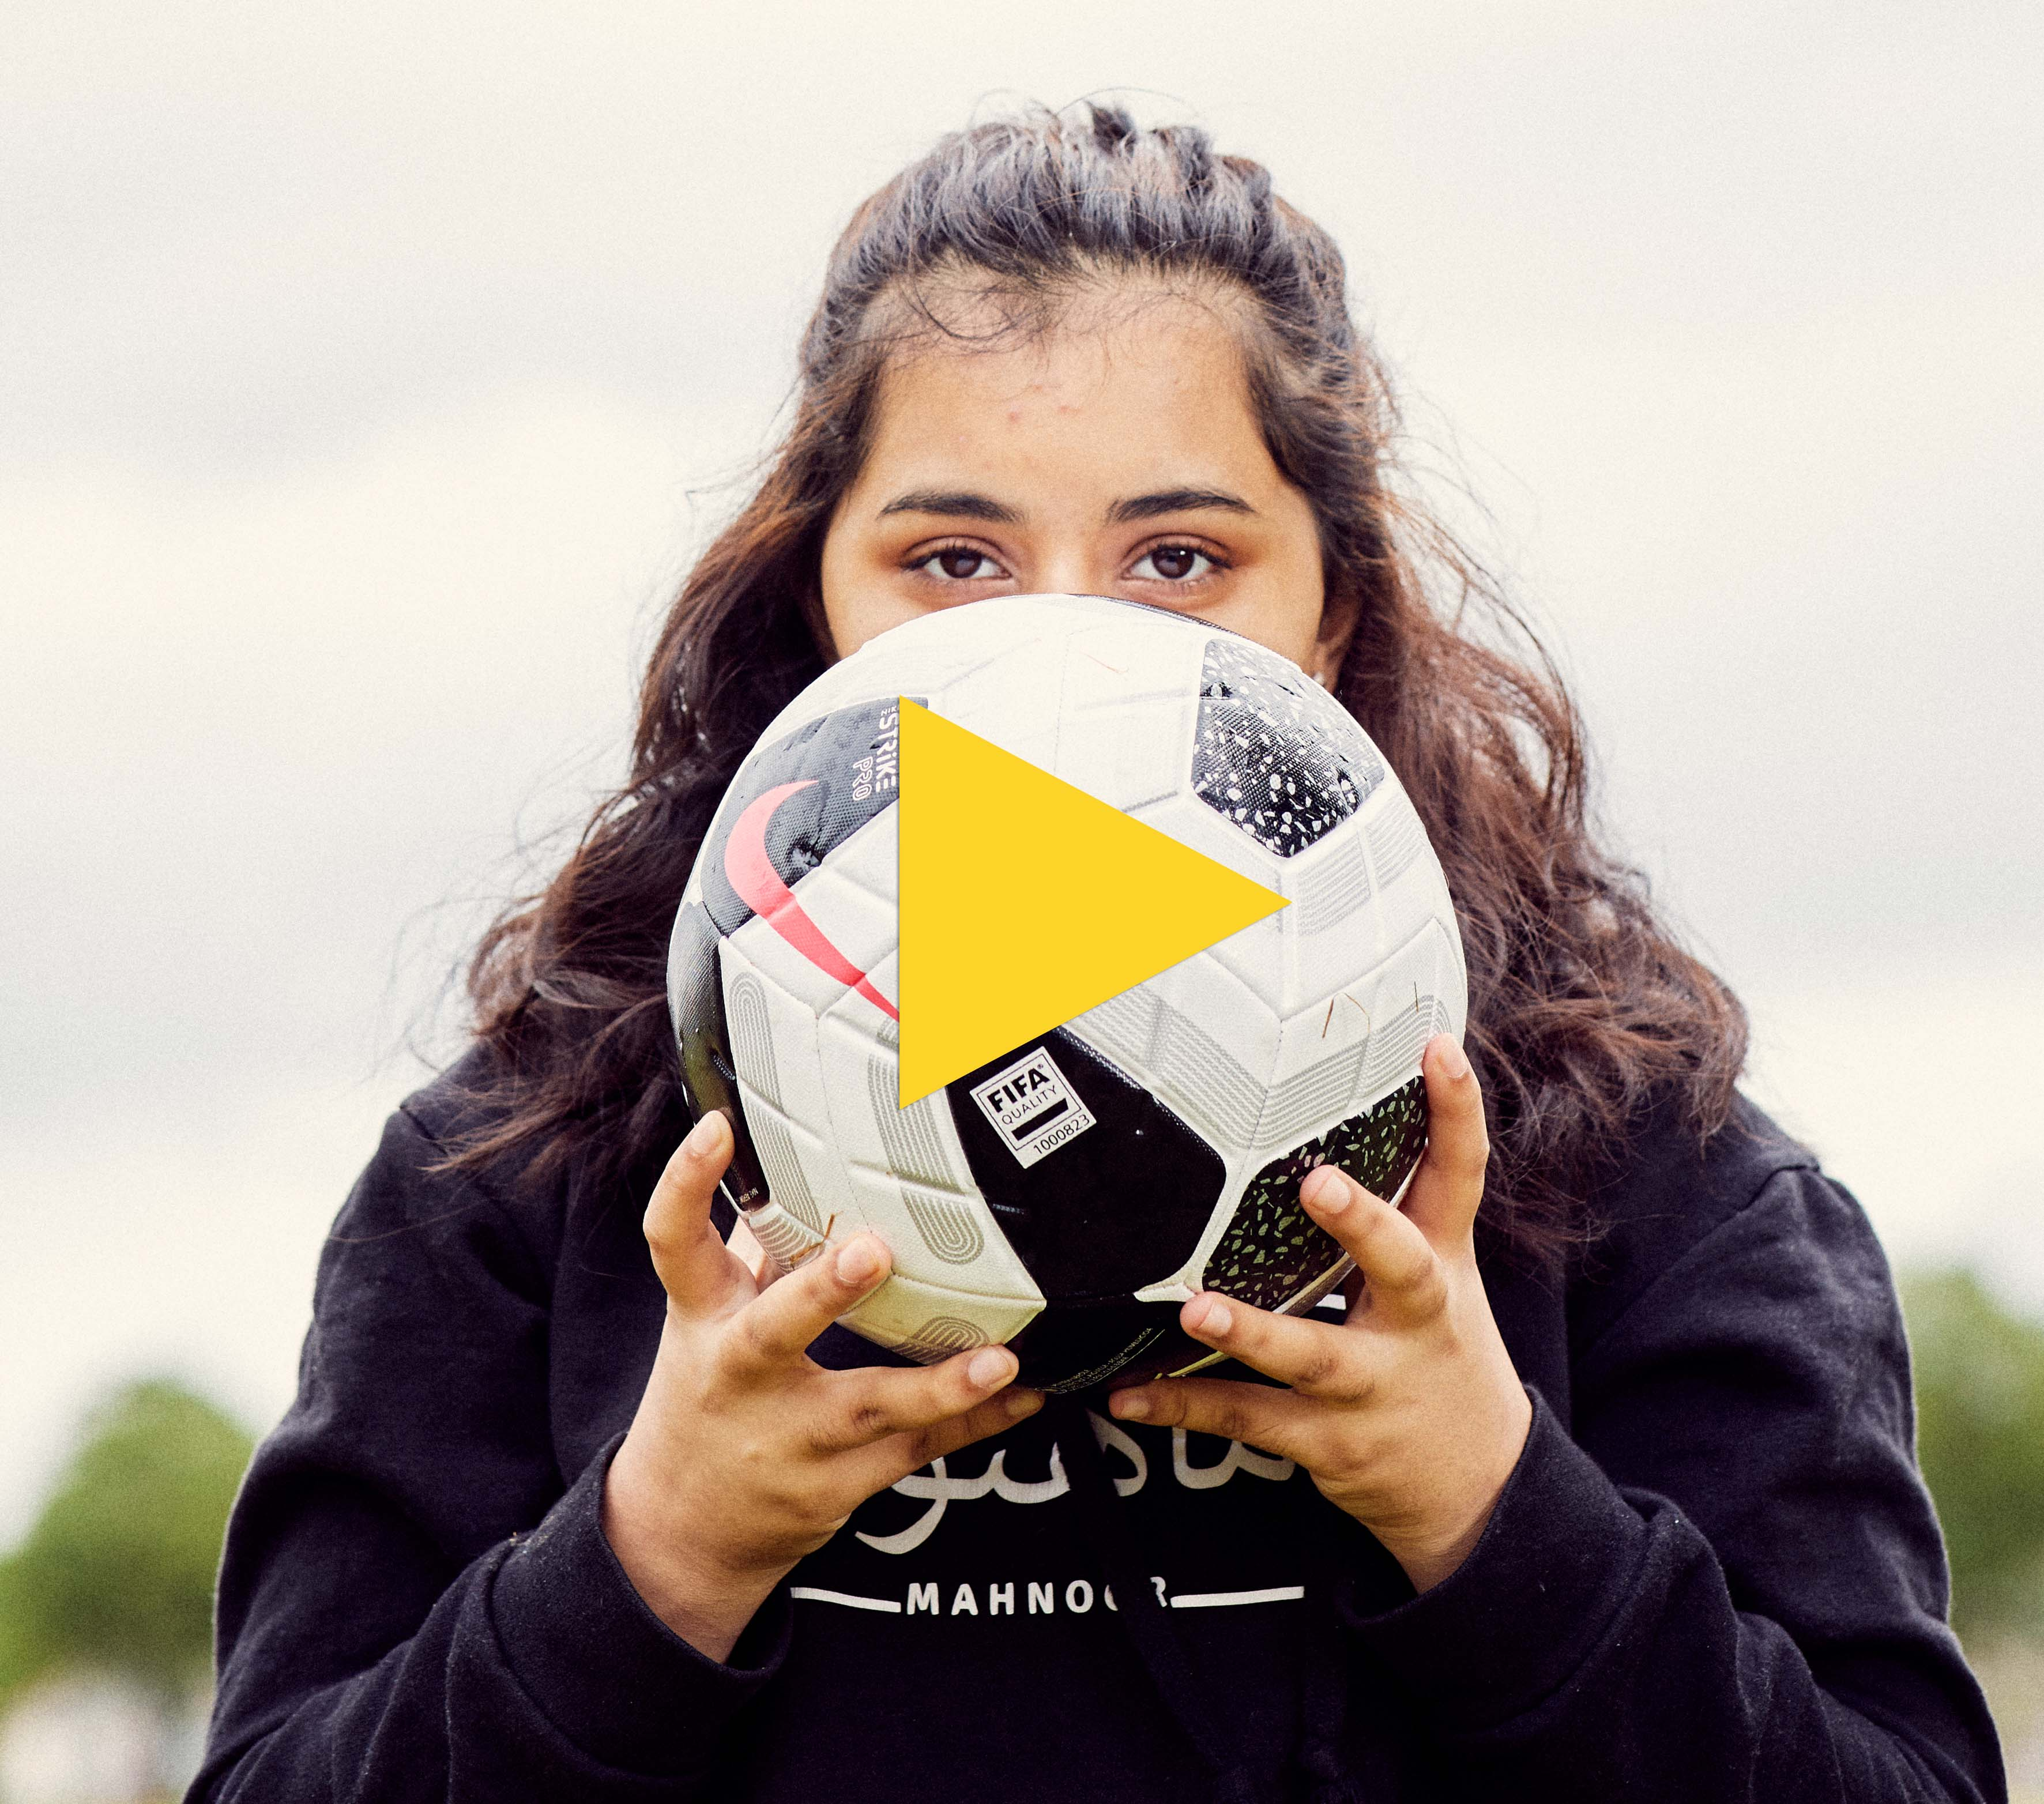 FBB participant holds up football